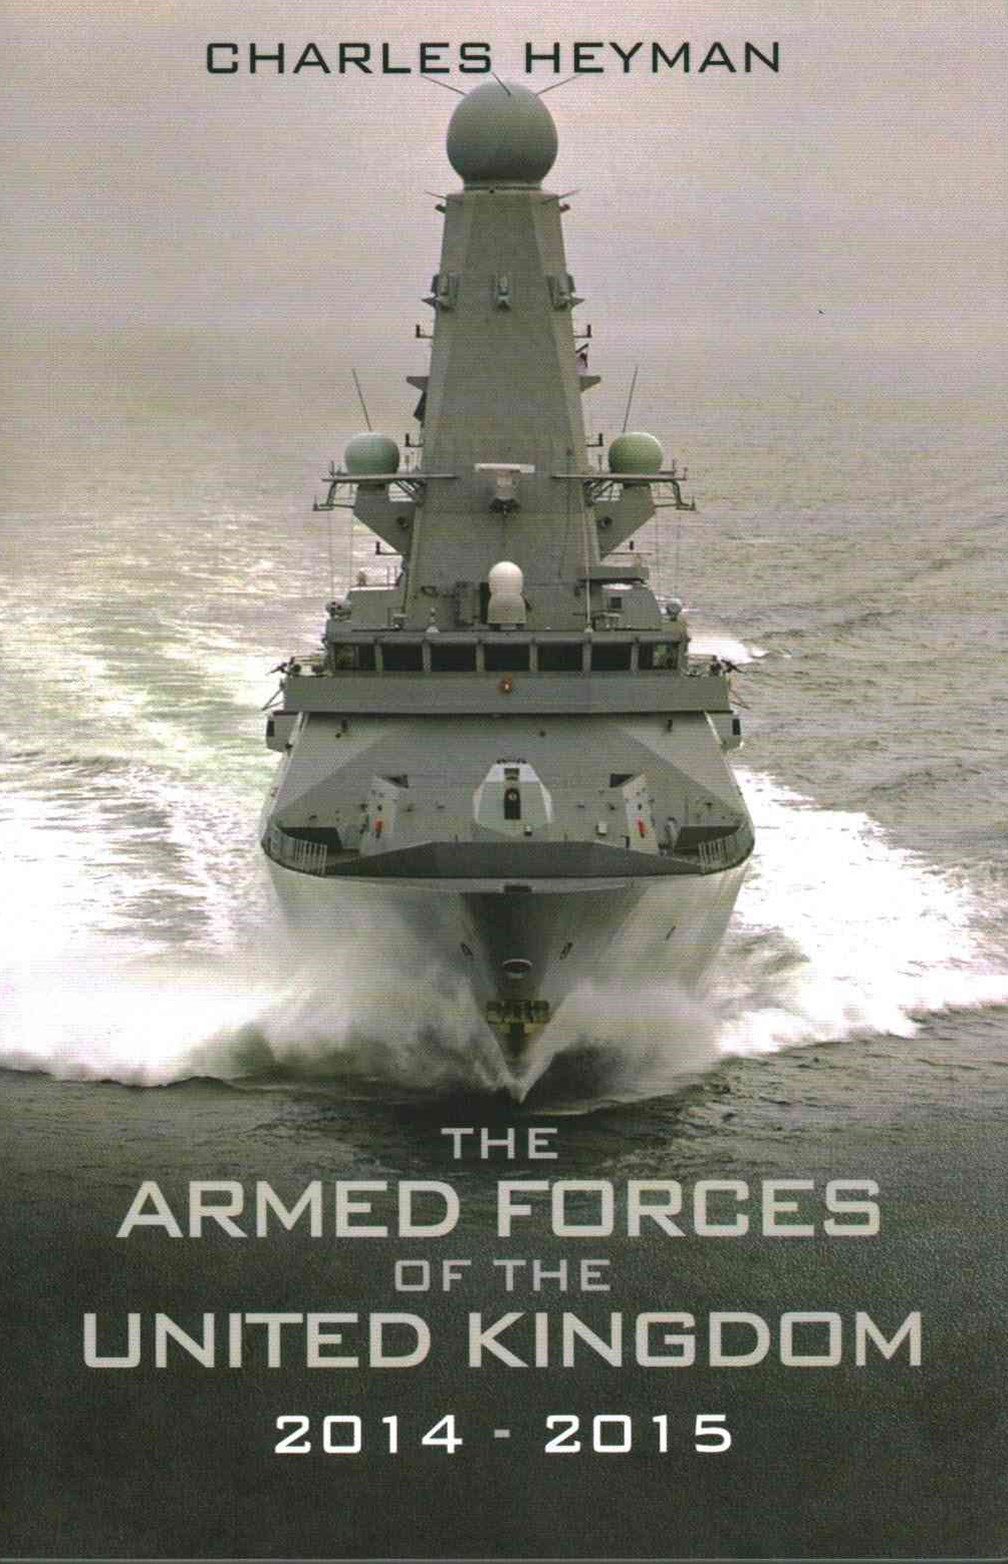 Armed Forces of the United Kingdom 2014-2015